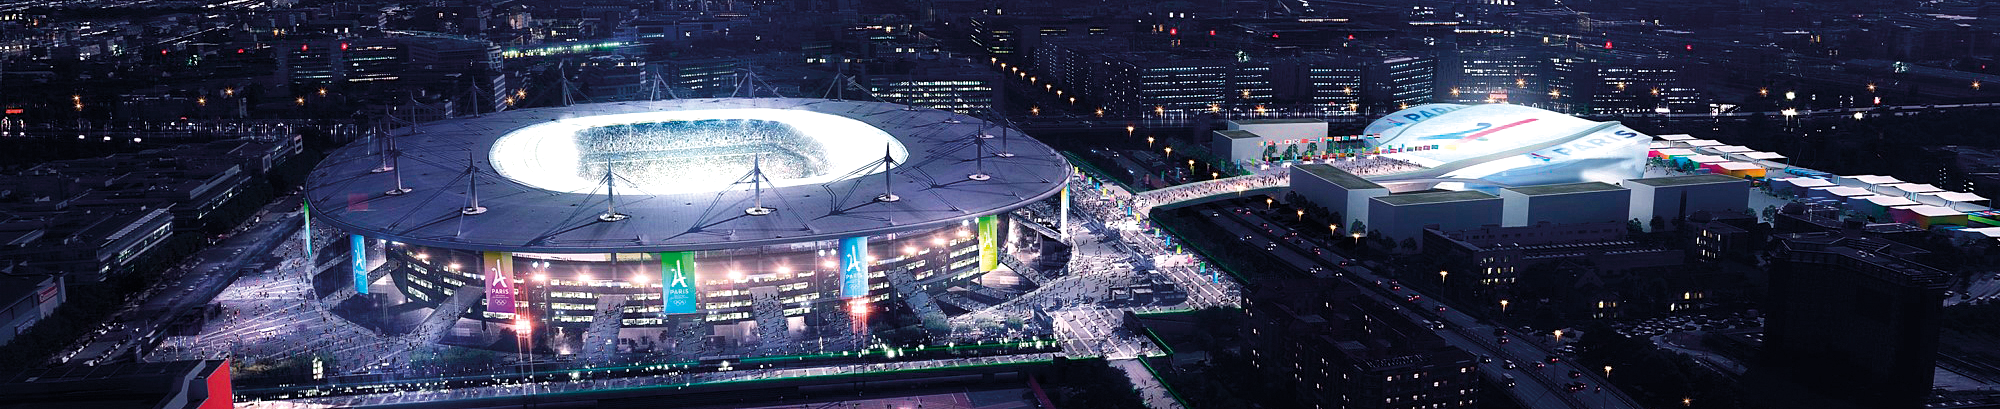 Stade de France et Centre aquatique olympique Paris 2024